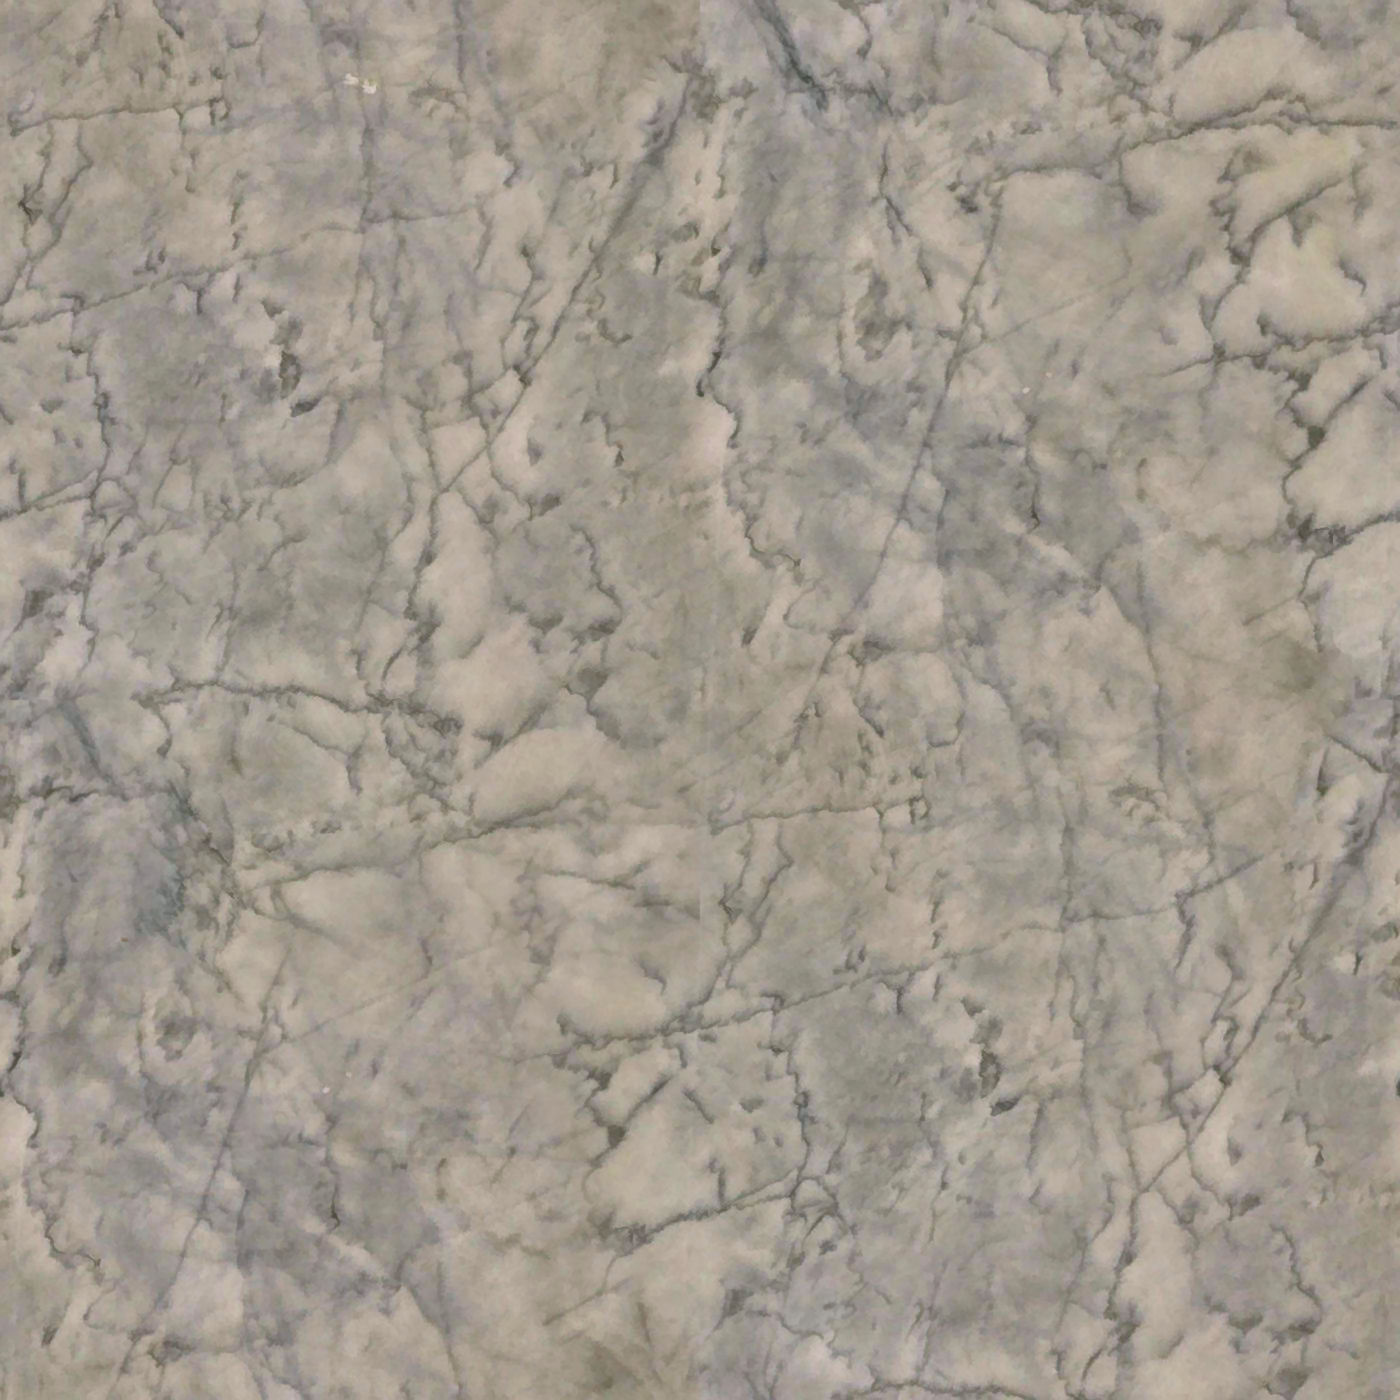 Seamless Marble Texture : High resolution seamless textures free marble